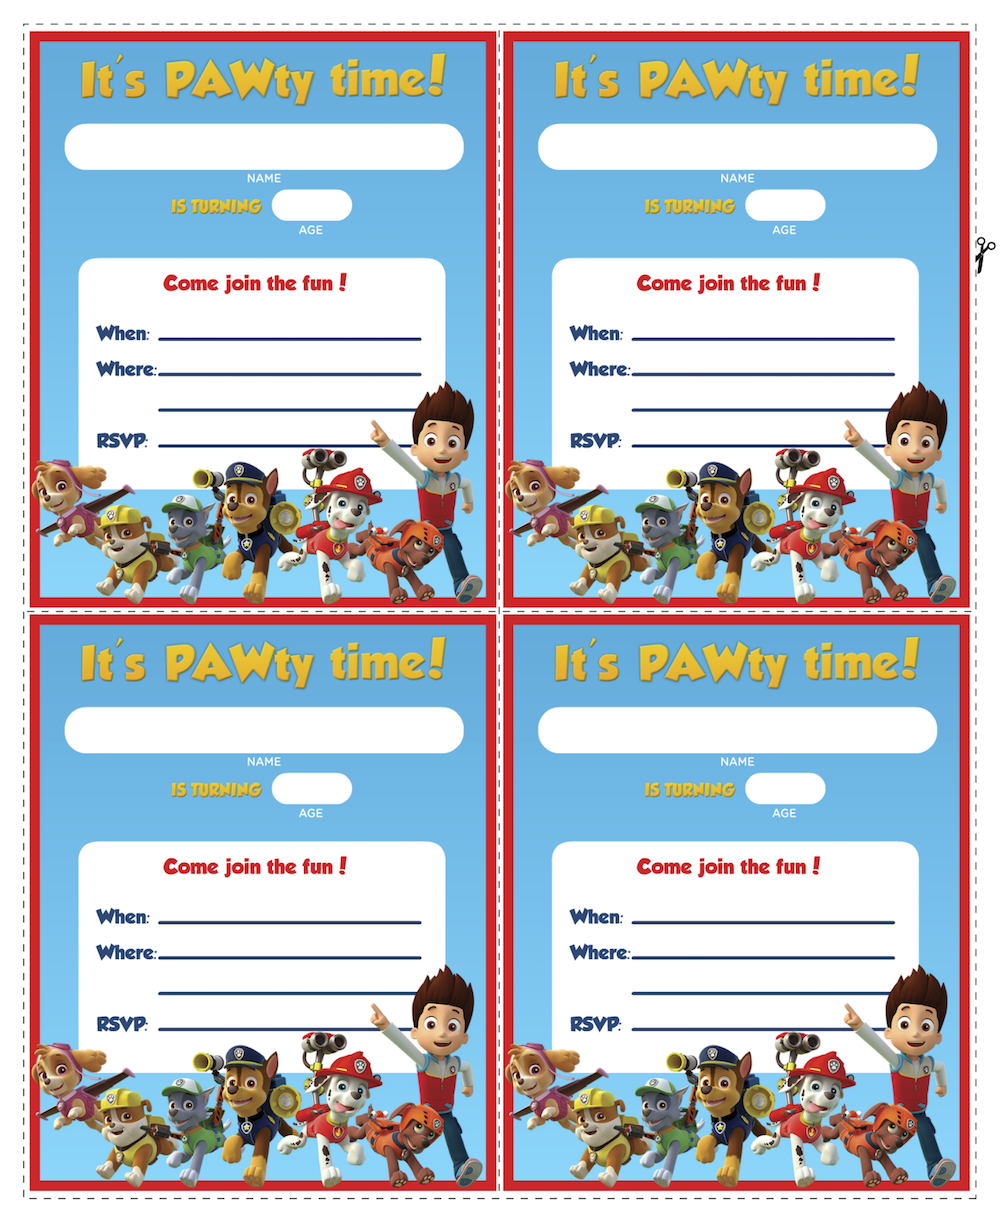 graphic relating to Paw Patrol Printable Birthday Card titled Paw Patrol Birthday